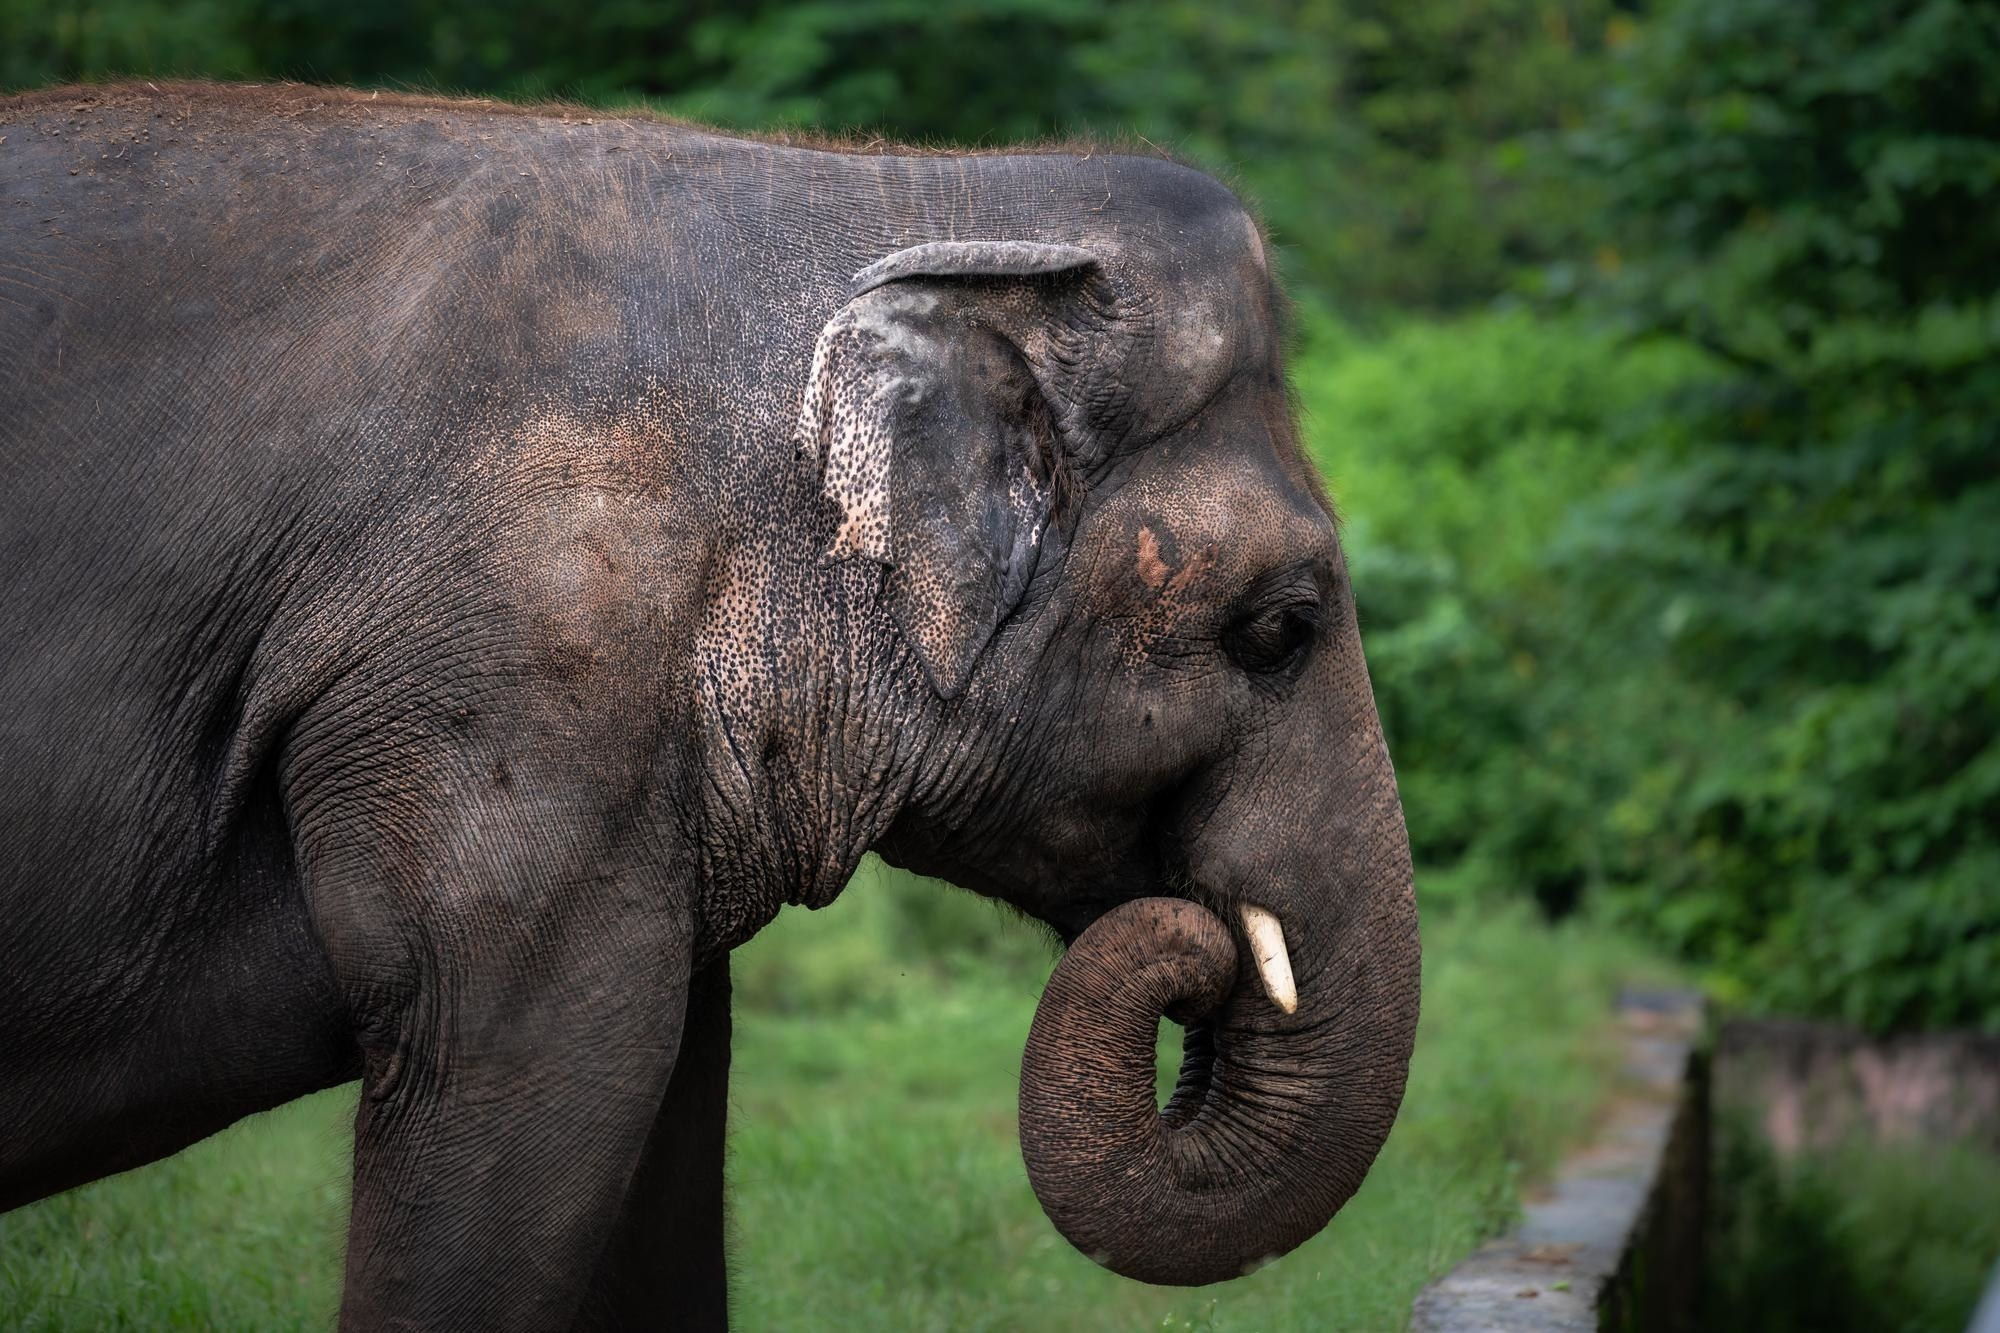 Image of Kaavan the elephant at Marghazar Zoo in Islamabad, Pakistan.